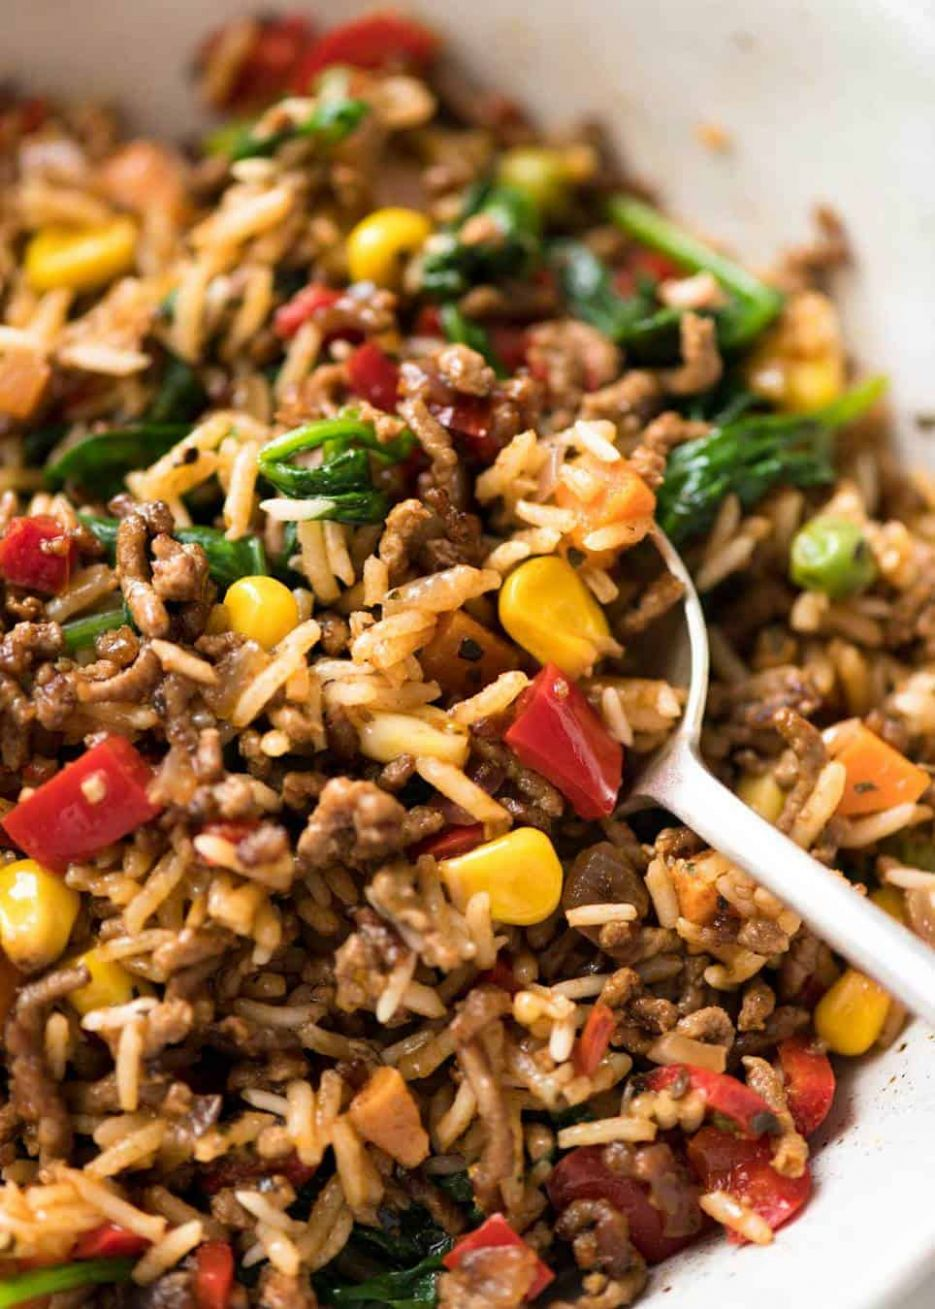 Beef and Rice with Veggies - Beef Recipes Hamburger